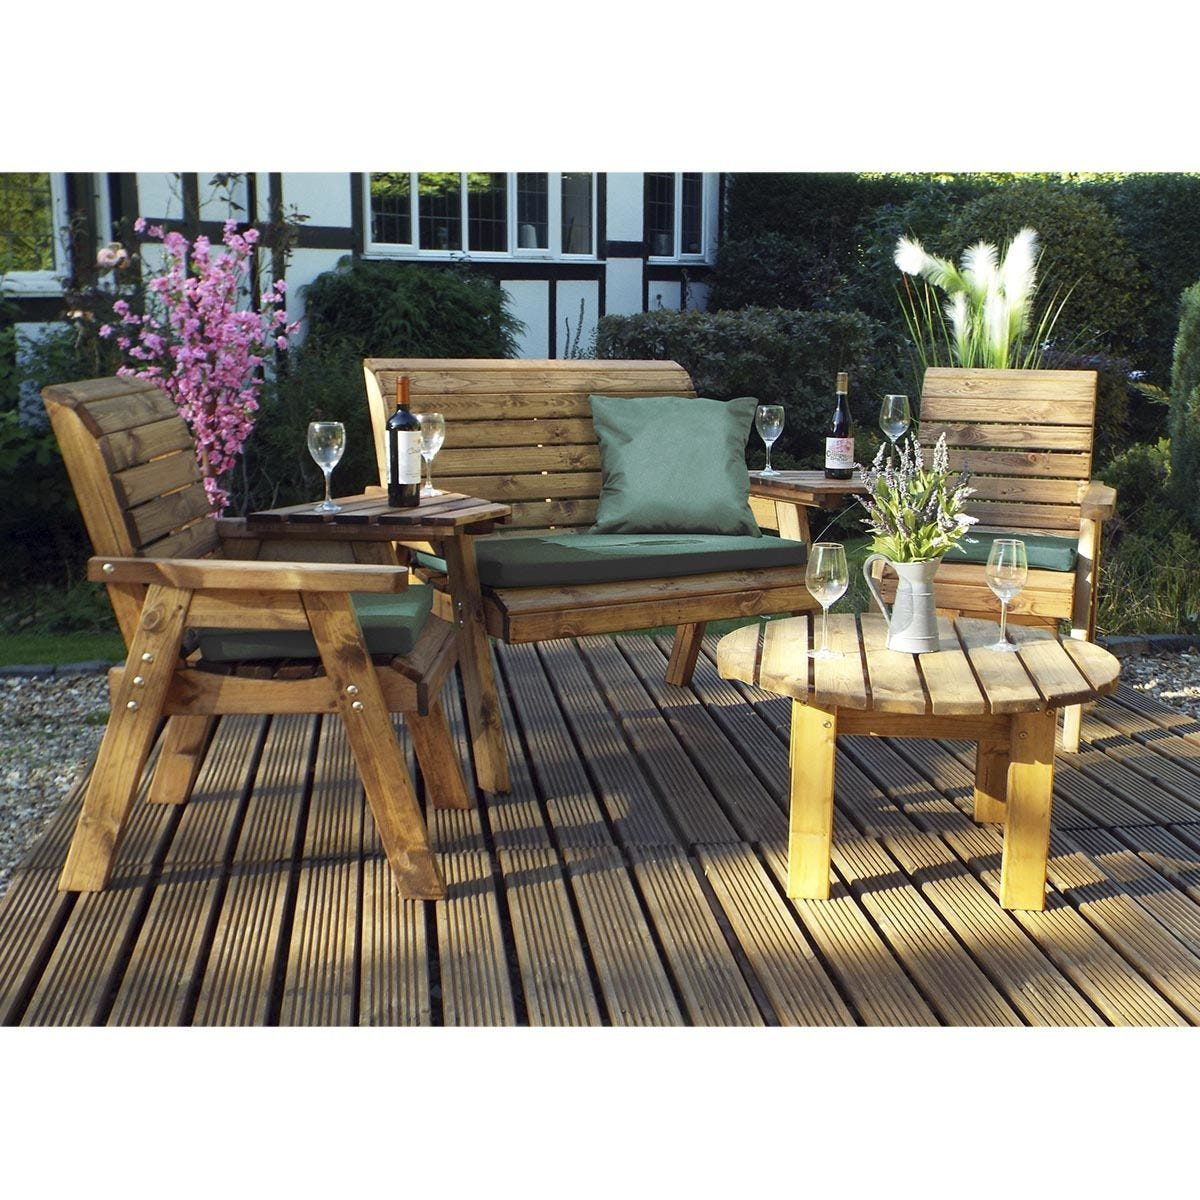 Charles Taylor Four Seater Set Round with Green Cushions